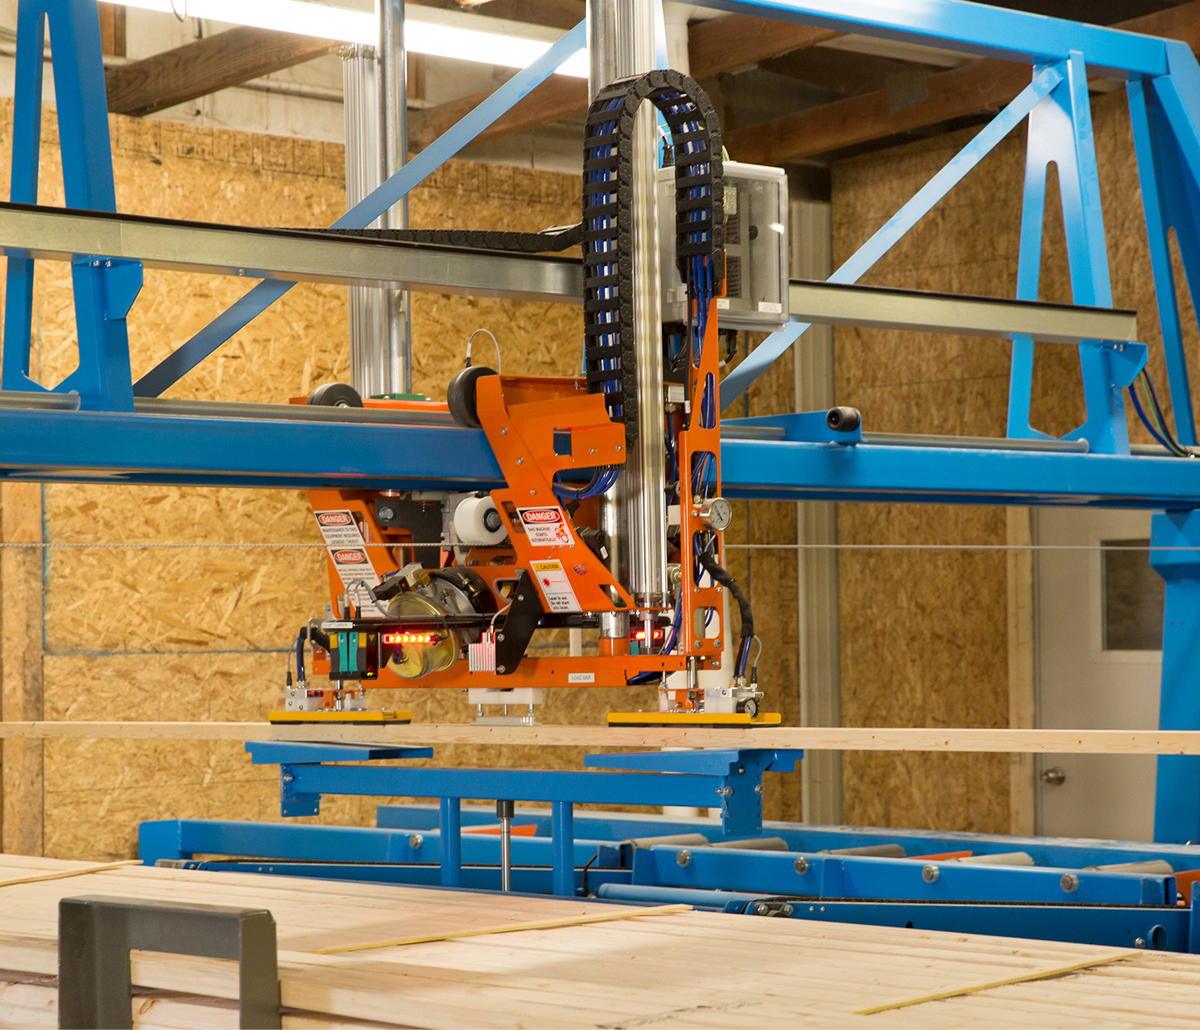 MiTek Ranger Retrieval System Automated Solutions - Retrieval system moving lumber in facility